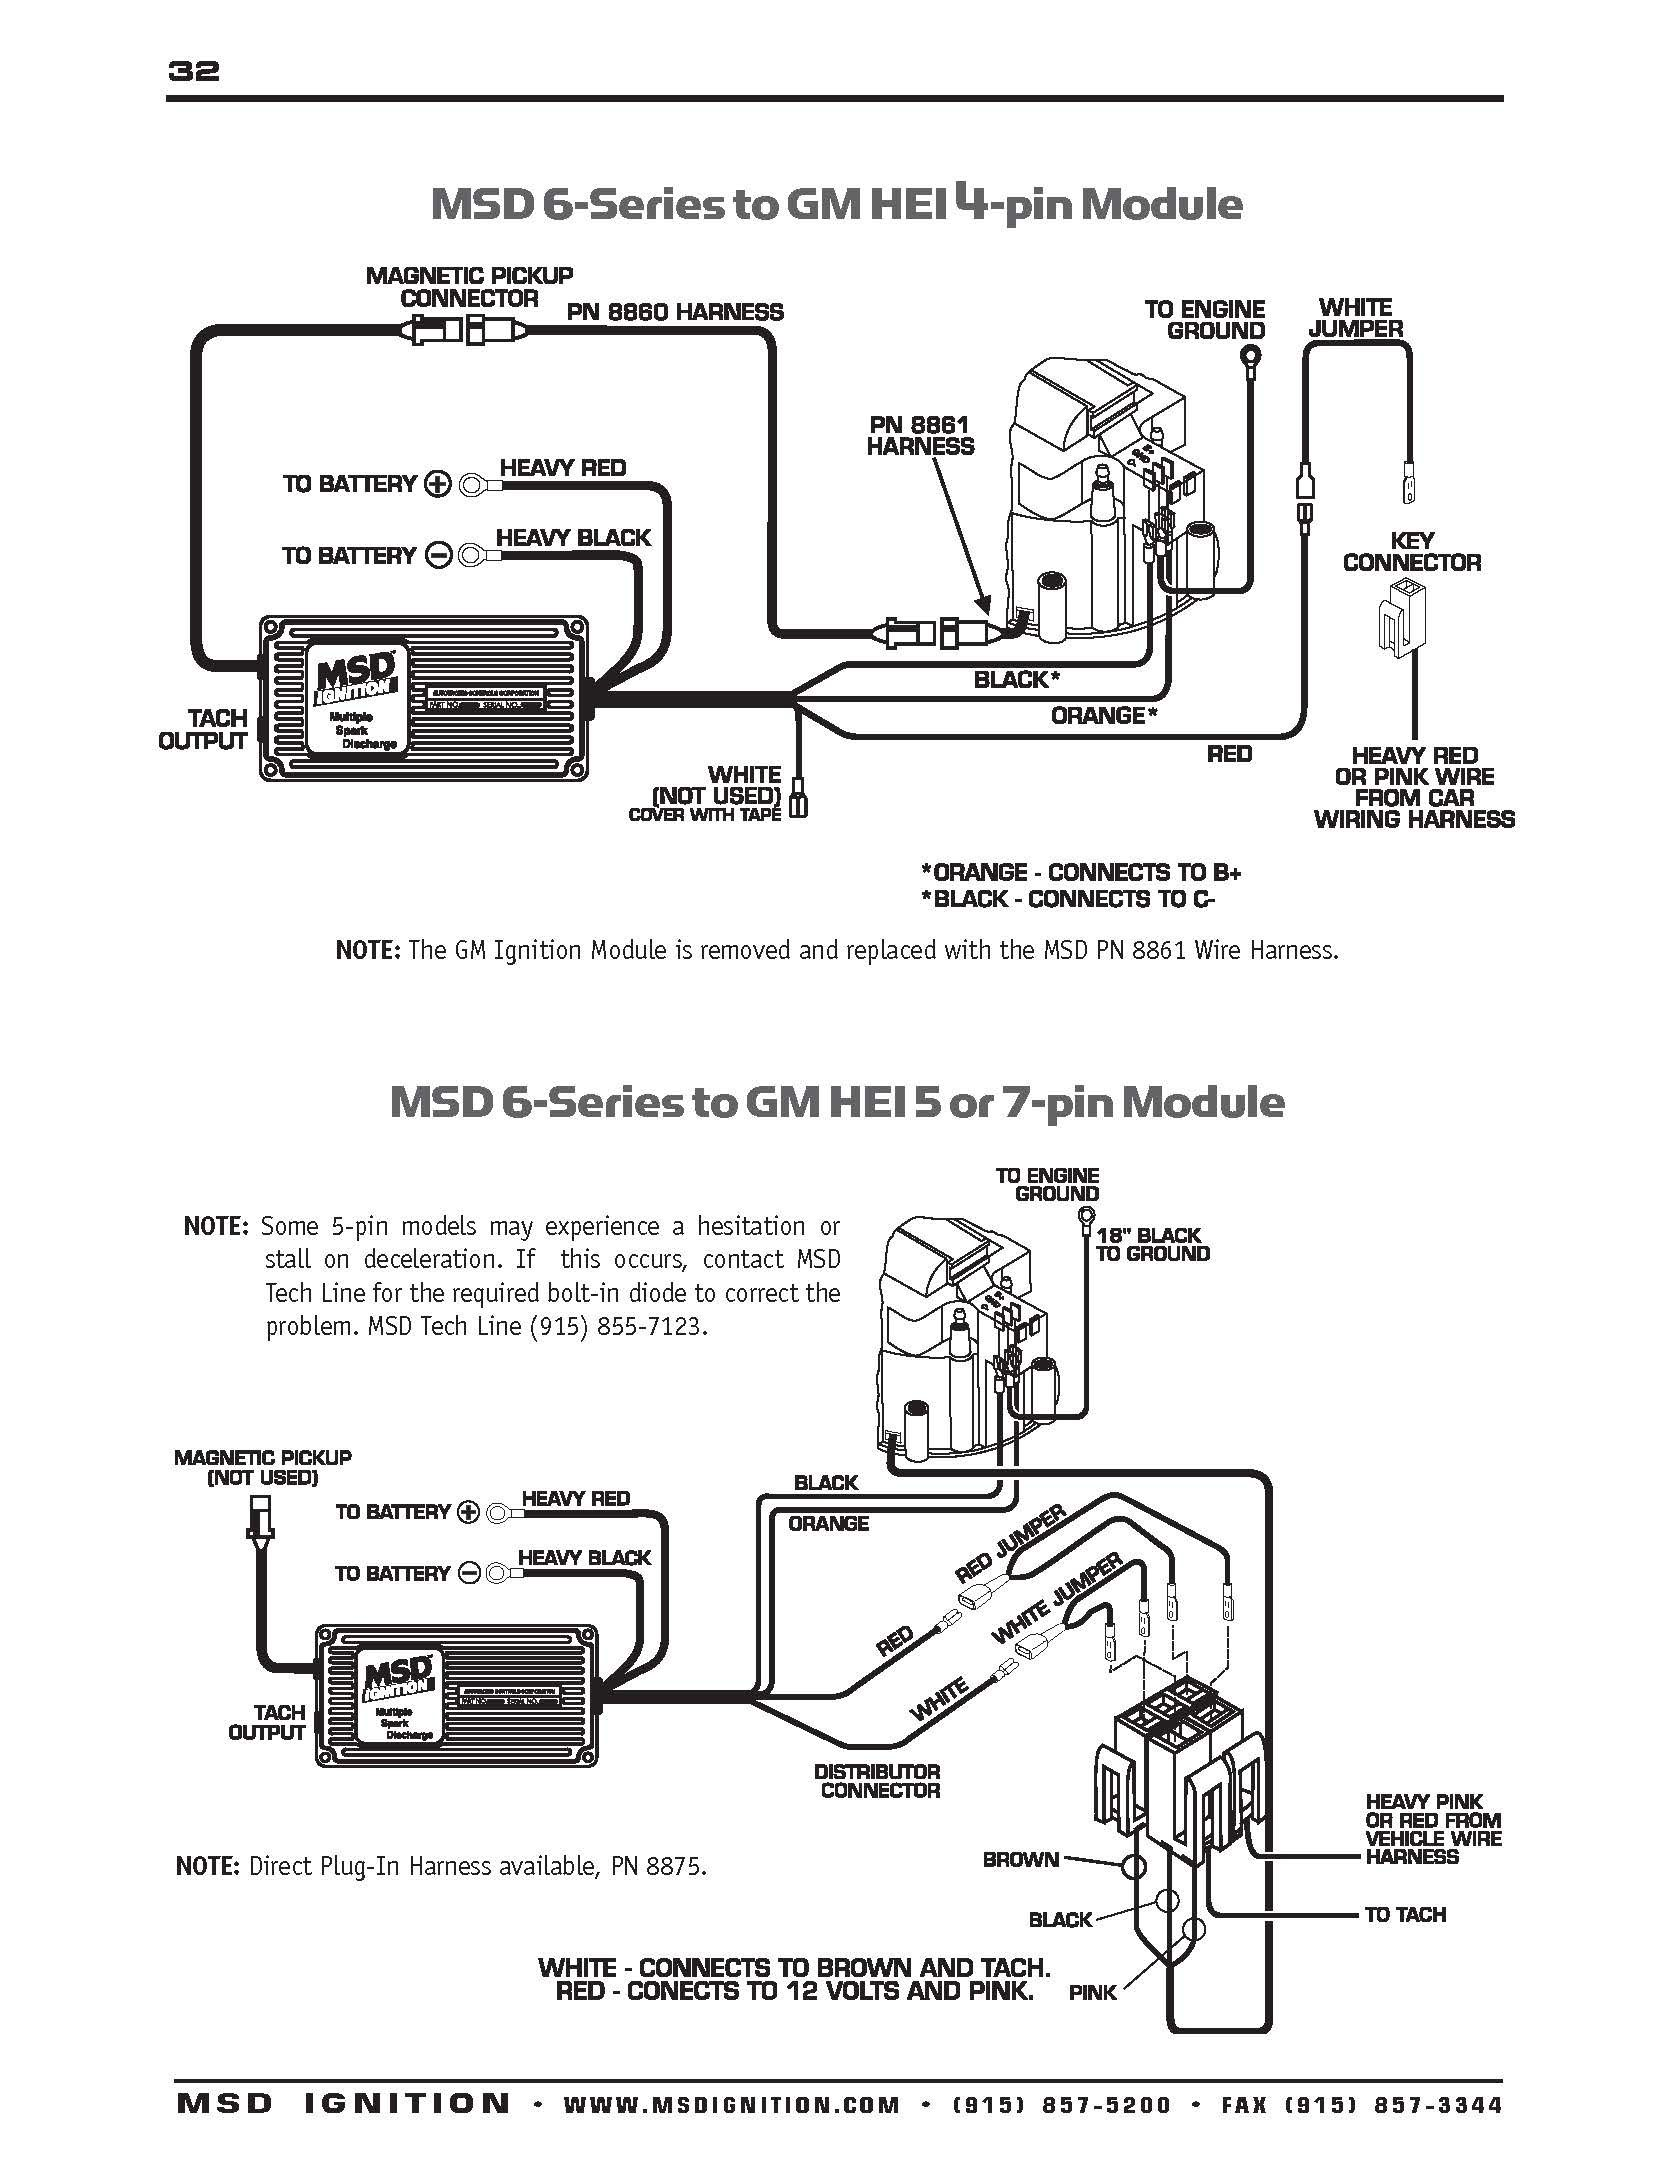 MSD Ignition Wiring Diagrams Car Repair, Car Shop, 1966 Chevelle, Shop  Ideas,